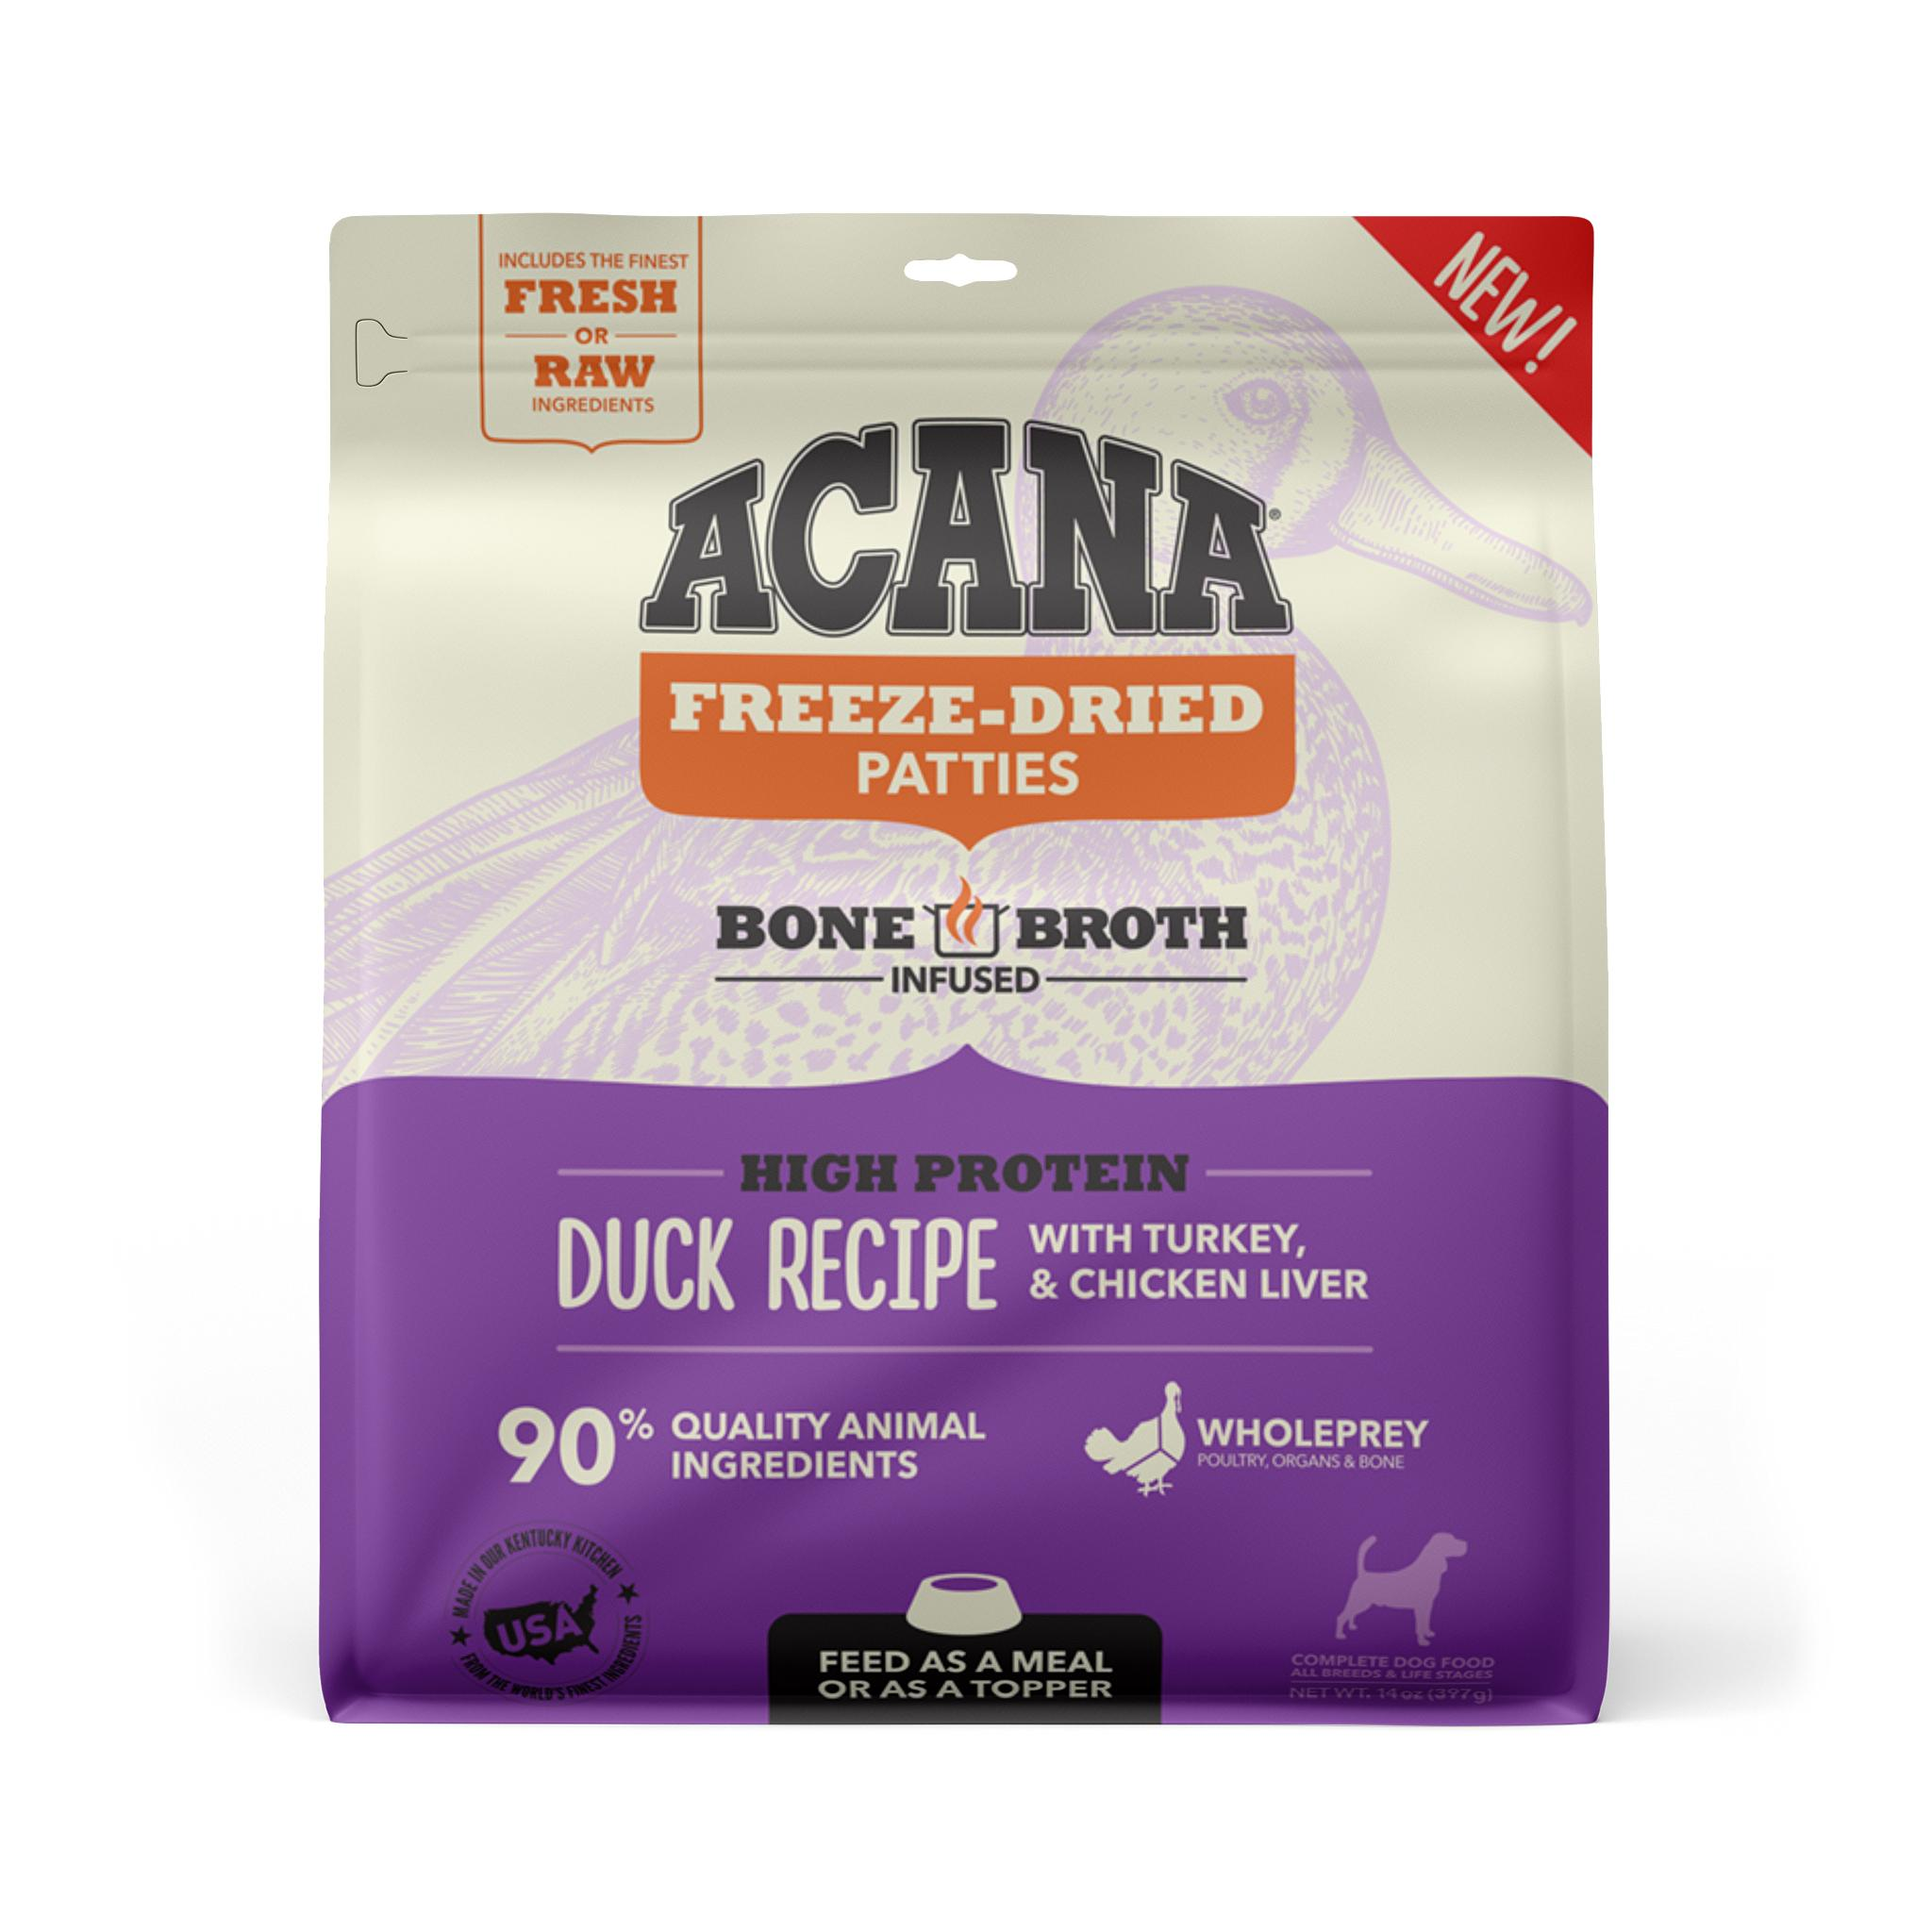 ACANA Duck Recipe Patties Grain-Free Freeze-Dried Dog Food, 14-oz (Size: 14-oz) Image